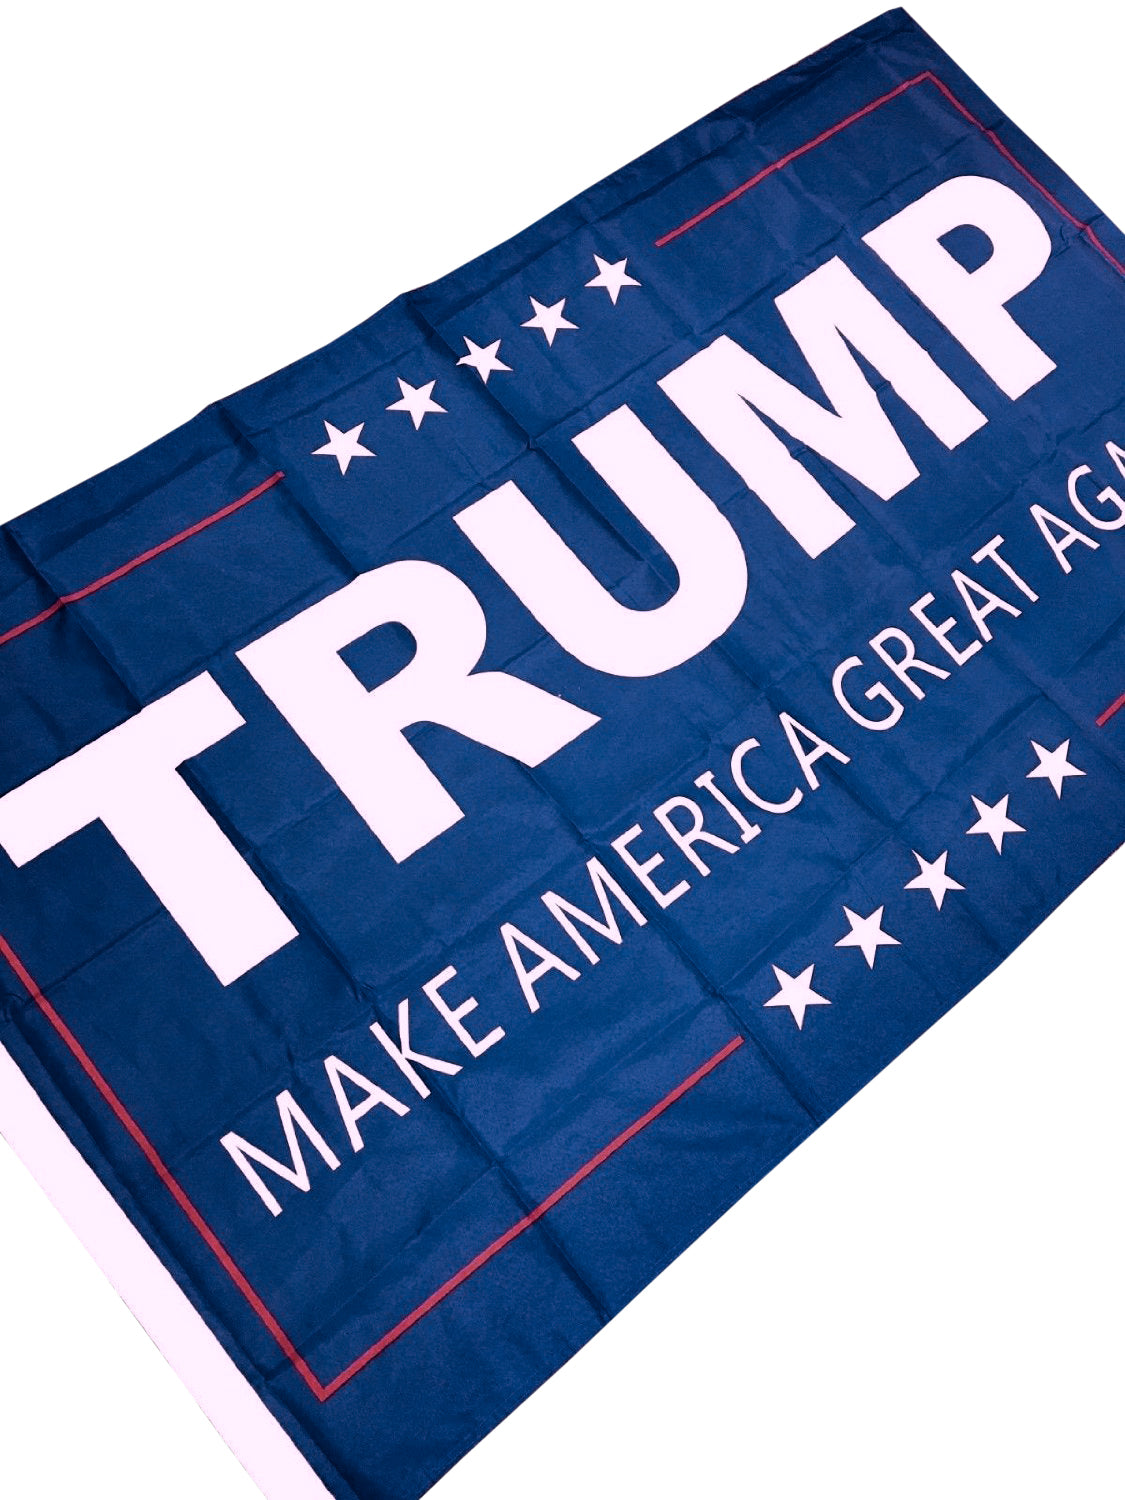 Donald Trump For President 2016 - Make America Great Again 3 x 5 Foot Flag